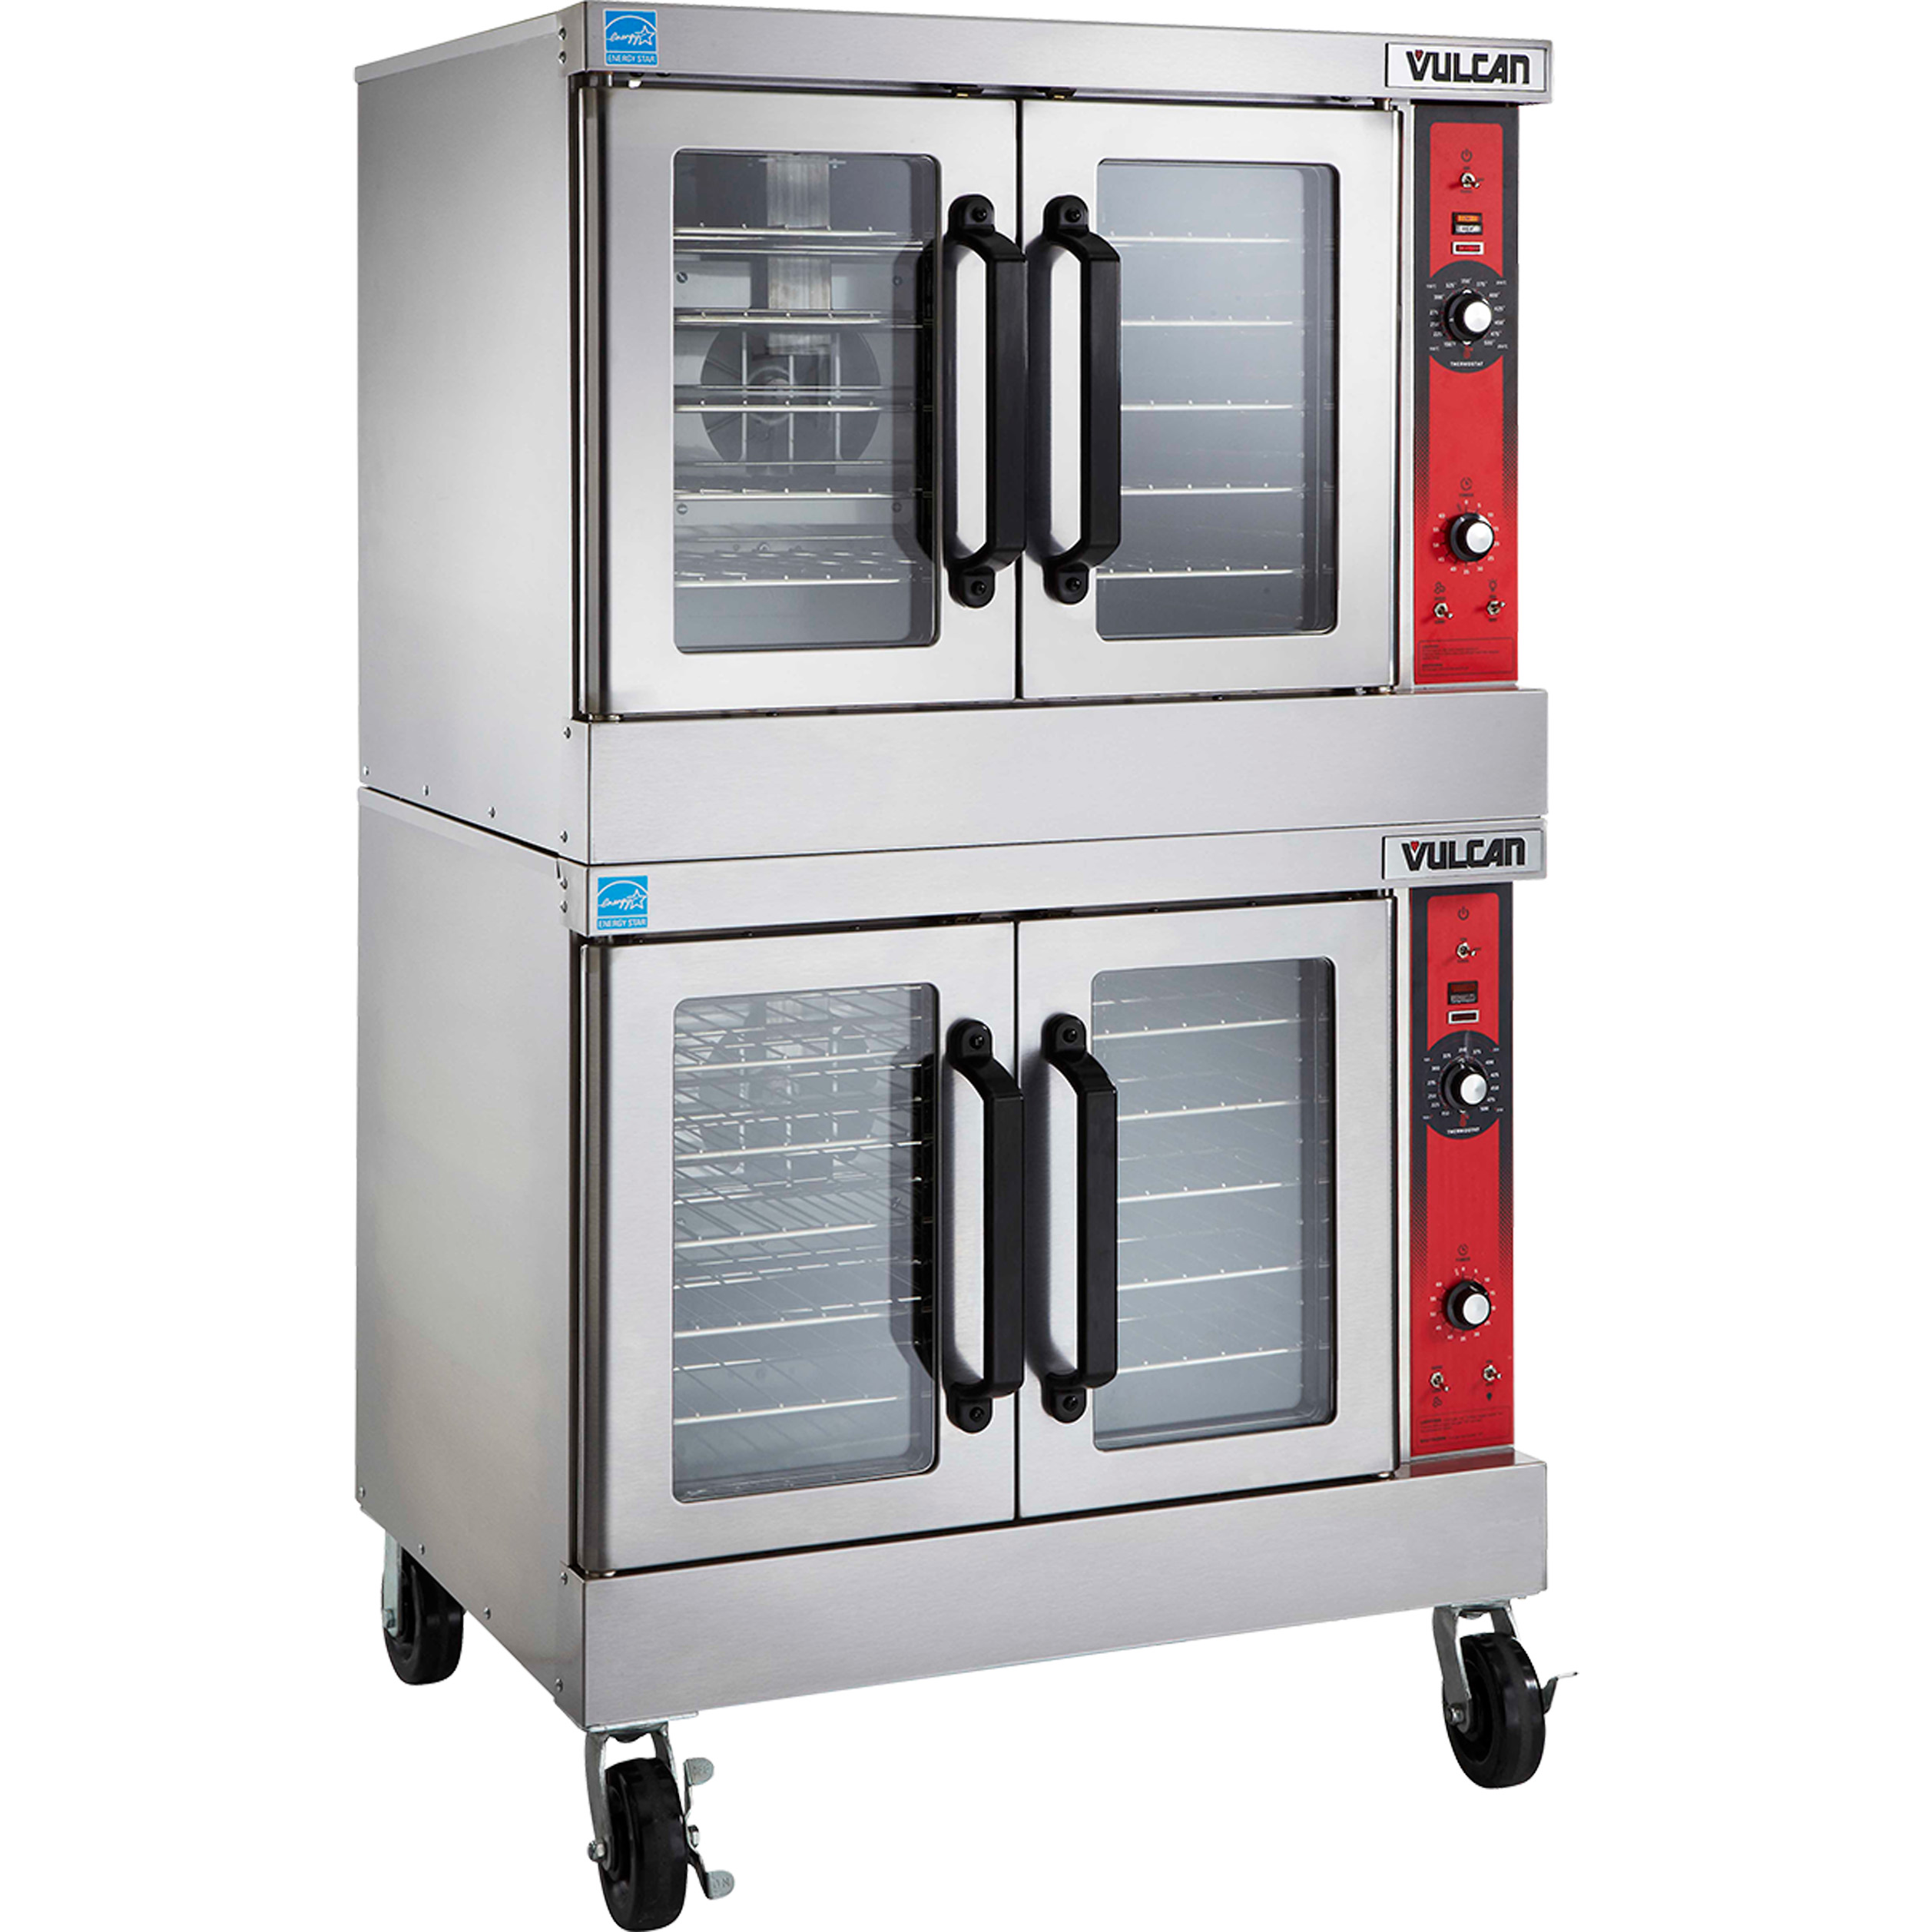 Vulcan VC66GD convection oven, gas